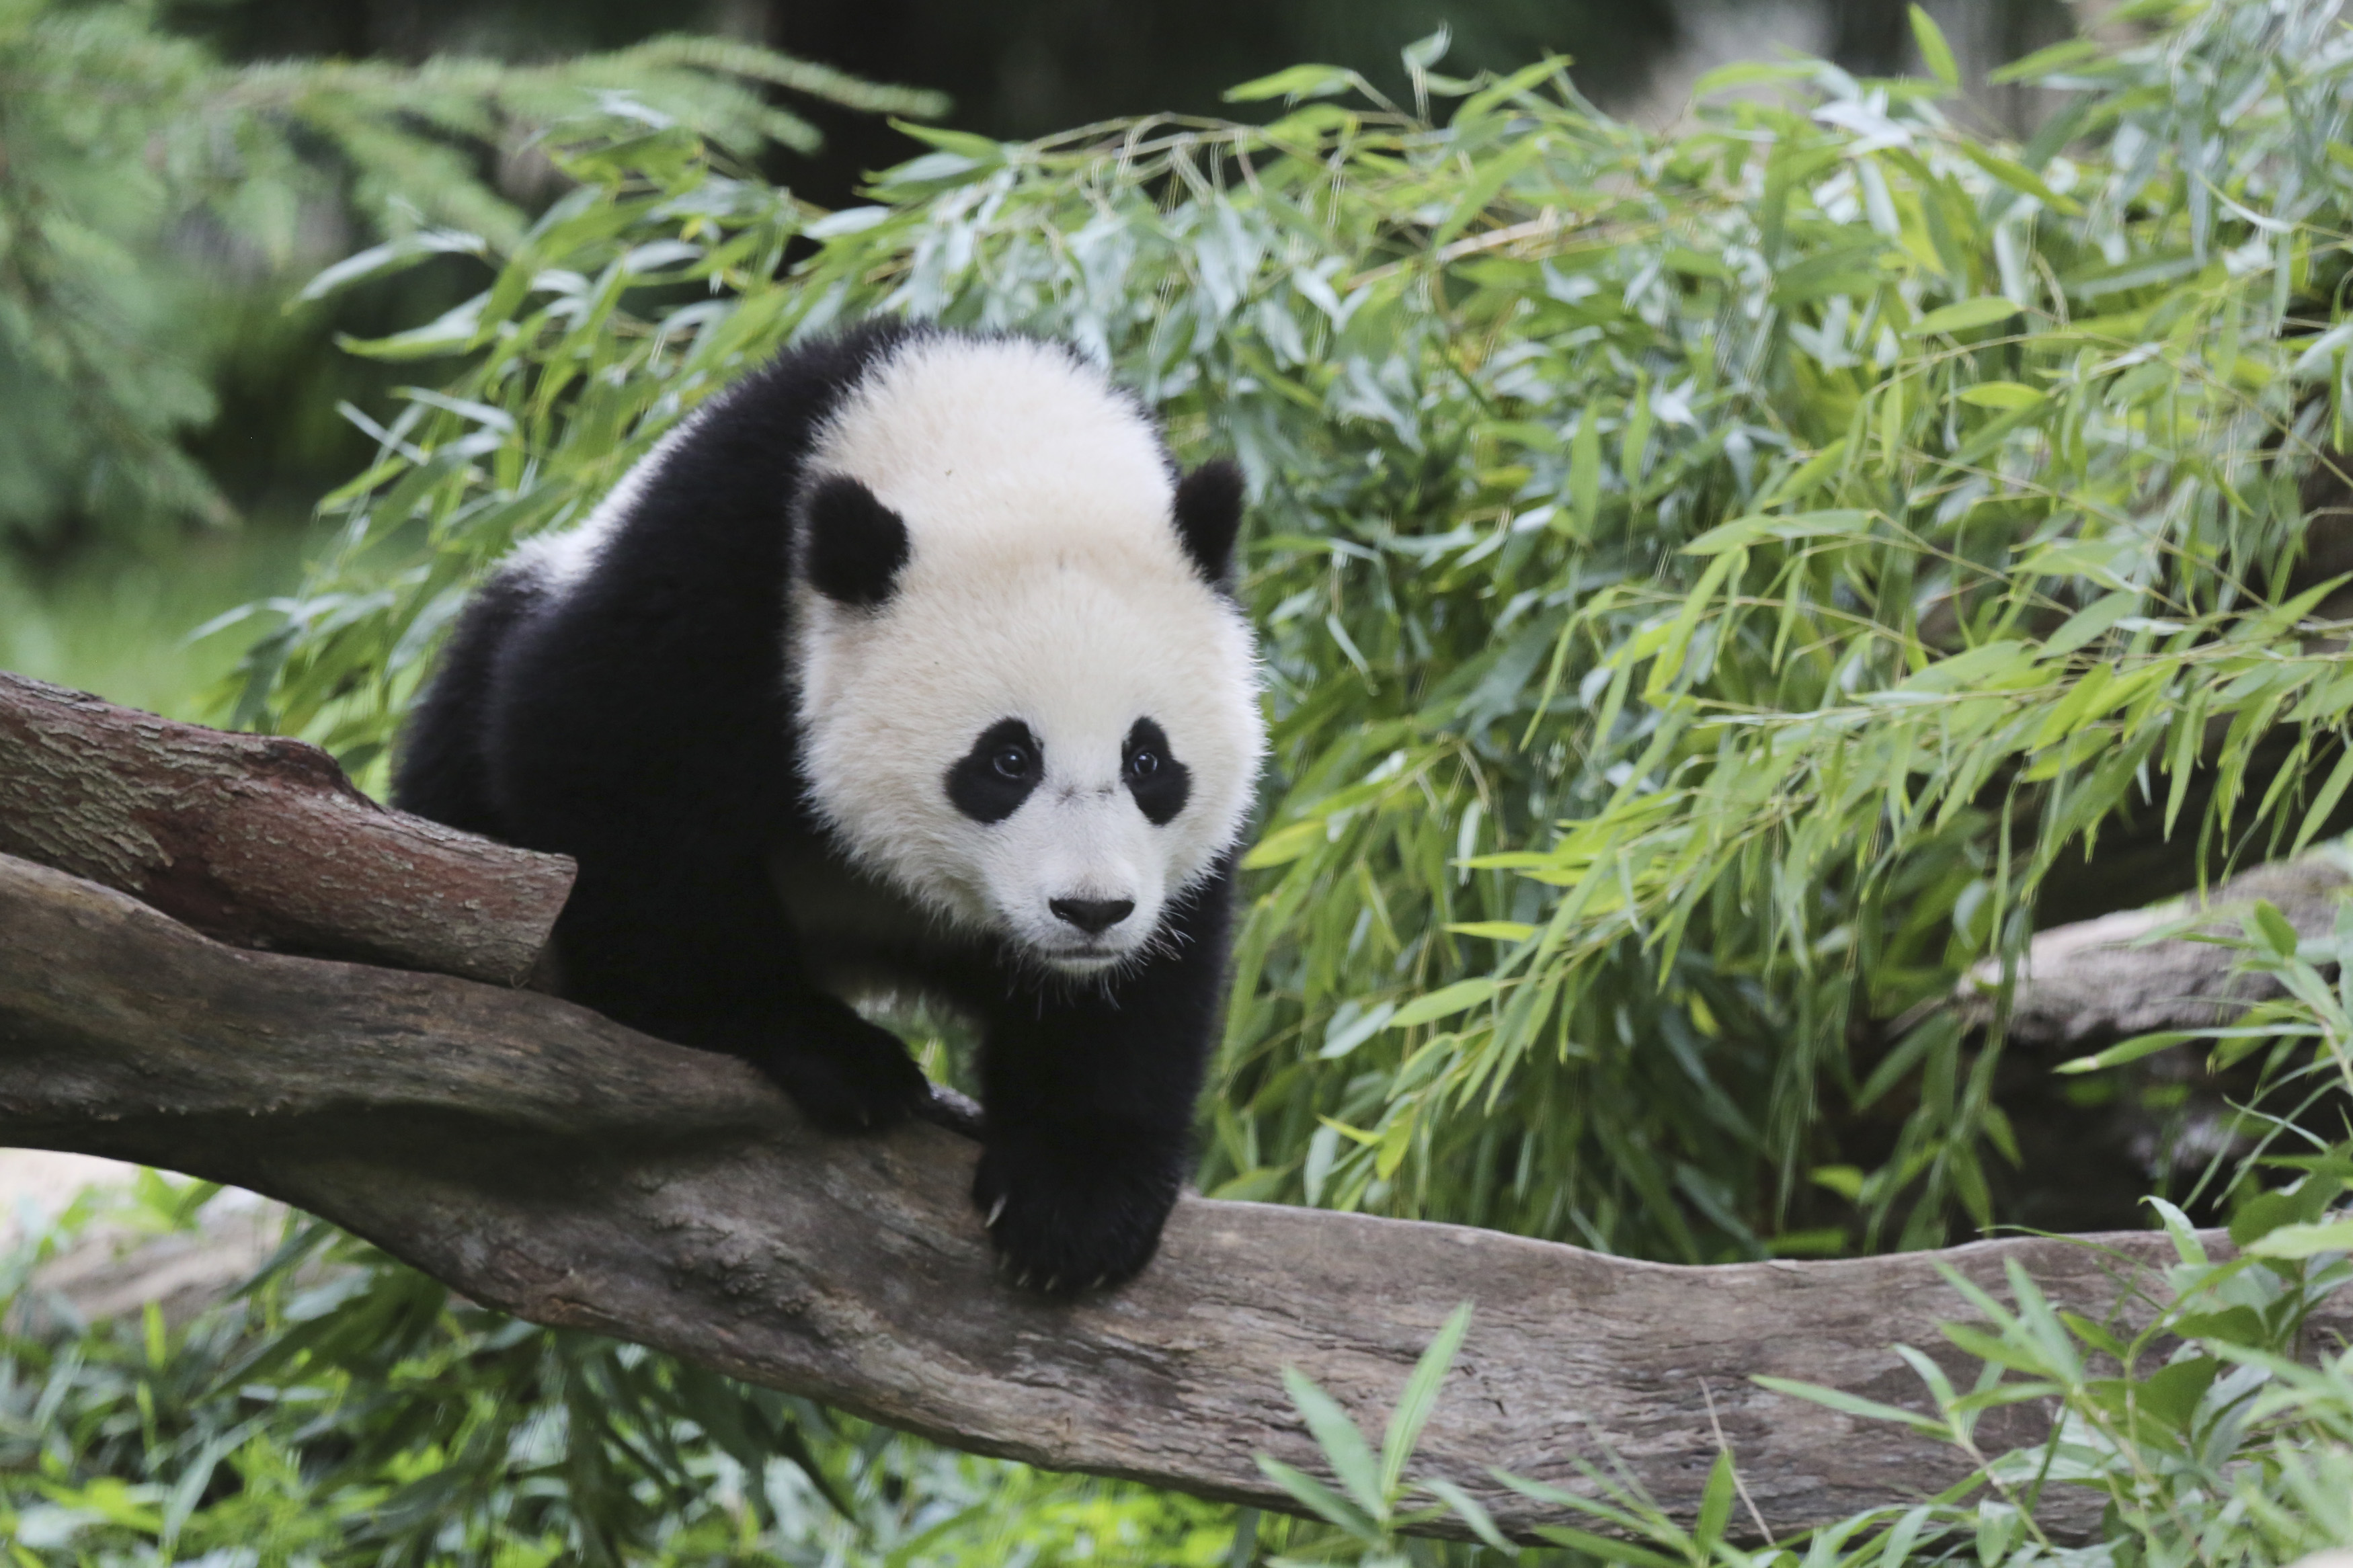 Bao Bao, a 44-pound female panda bear cub, is seen in the panda exhibit at the Smithsonian's National Zoo in Washington August 23, 2014.